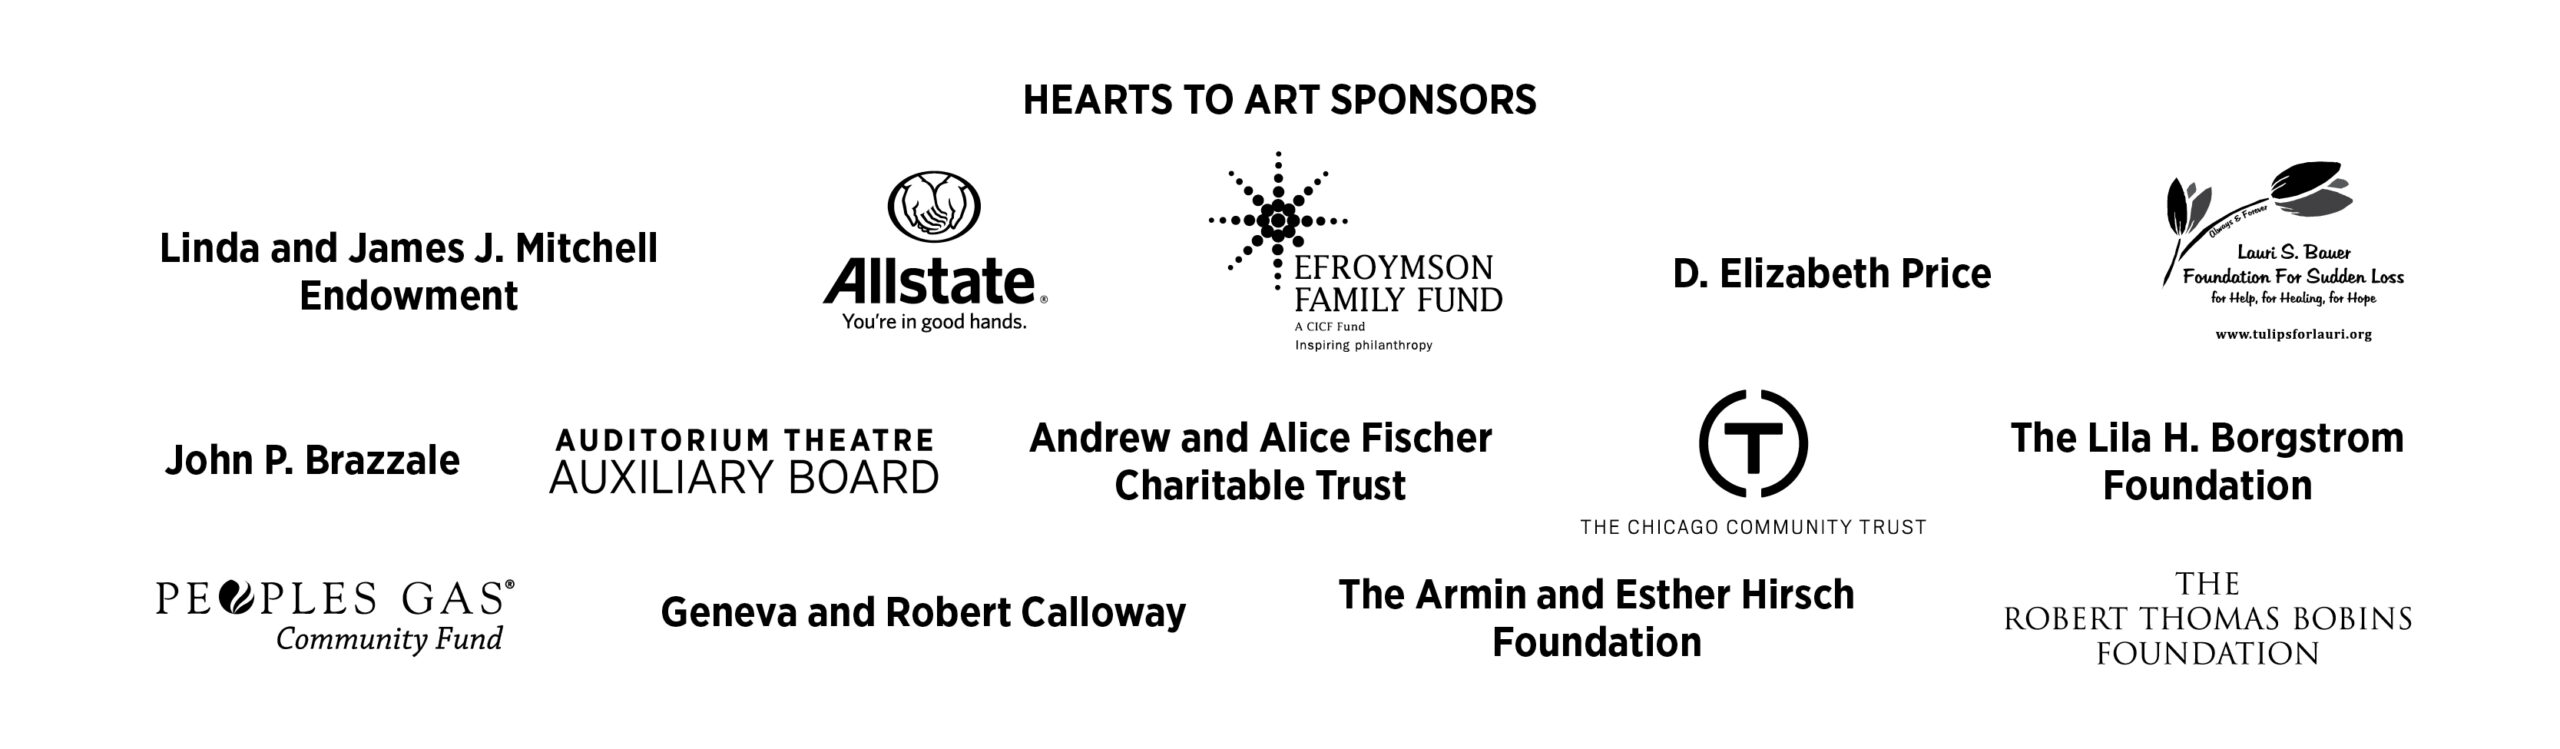 Hearts to Art Sponsors